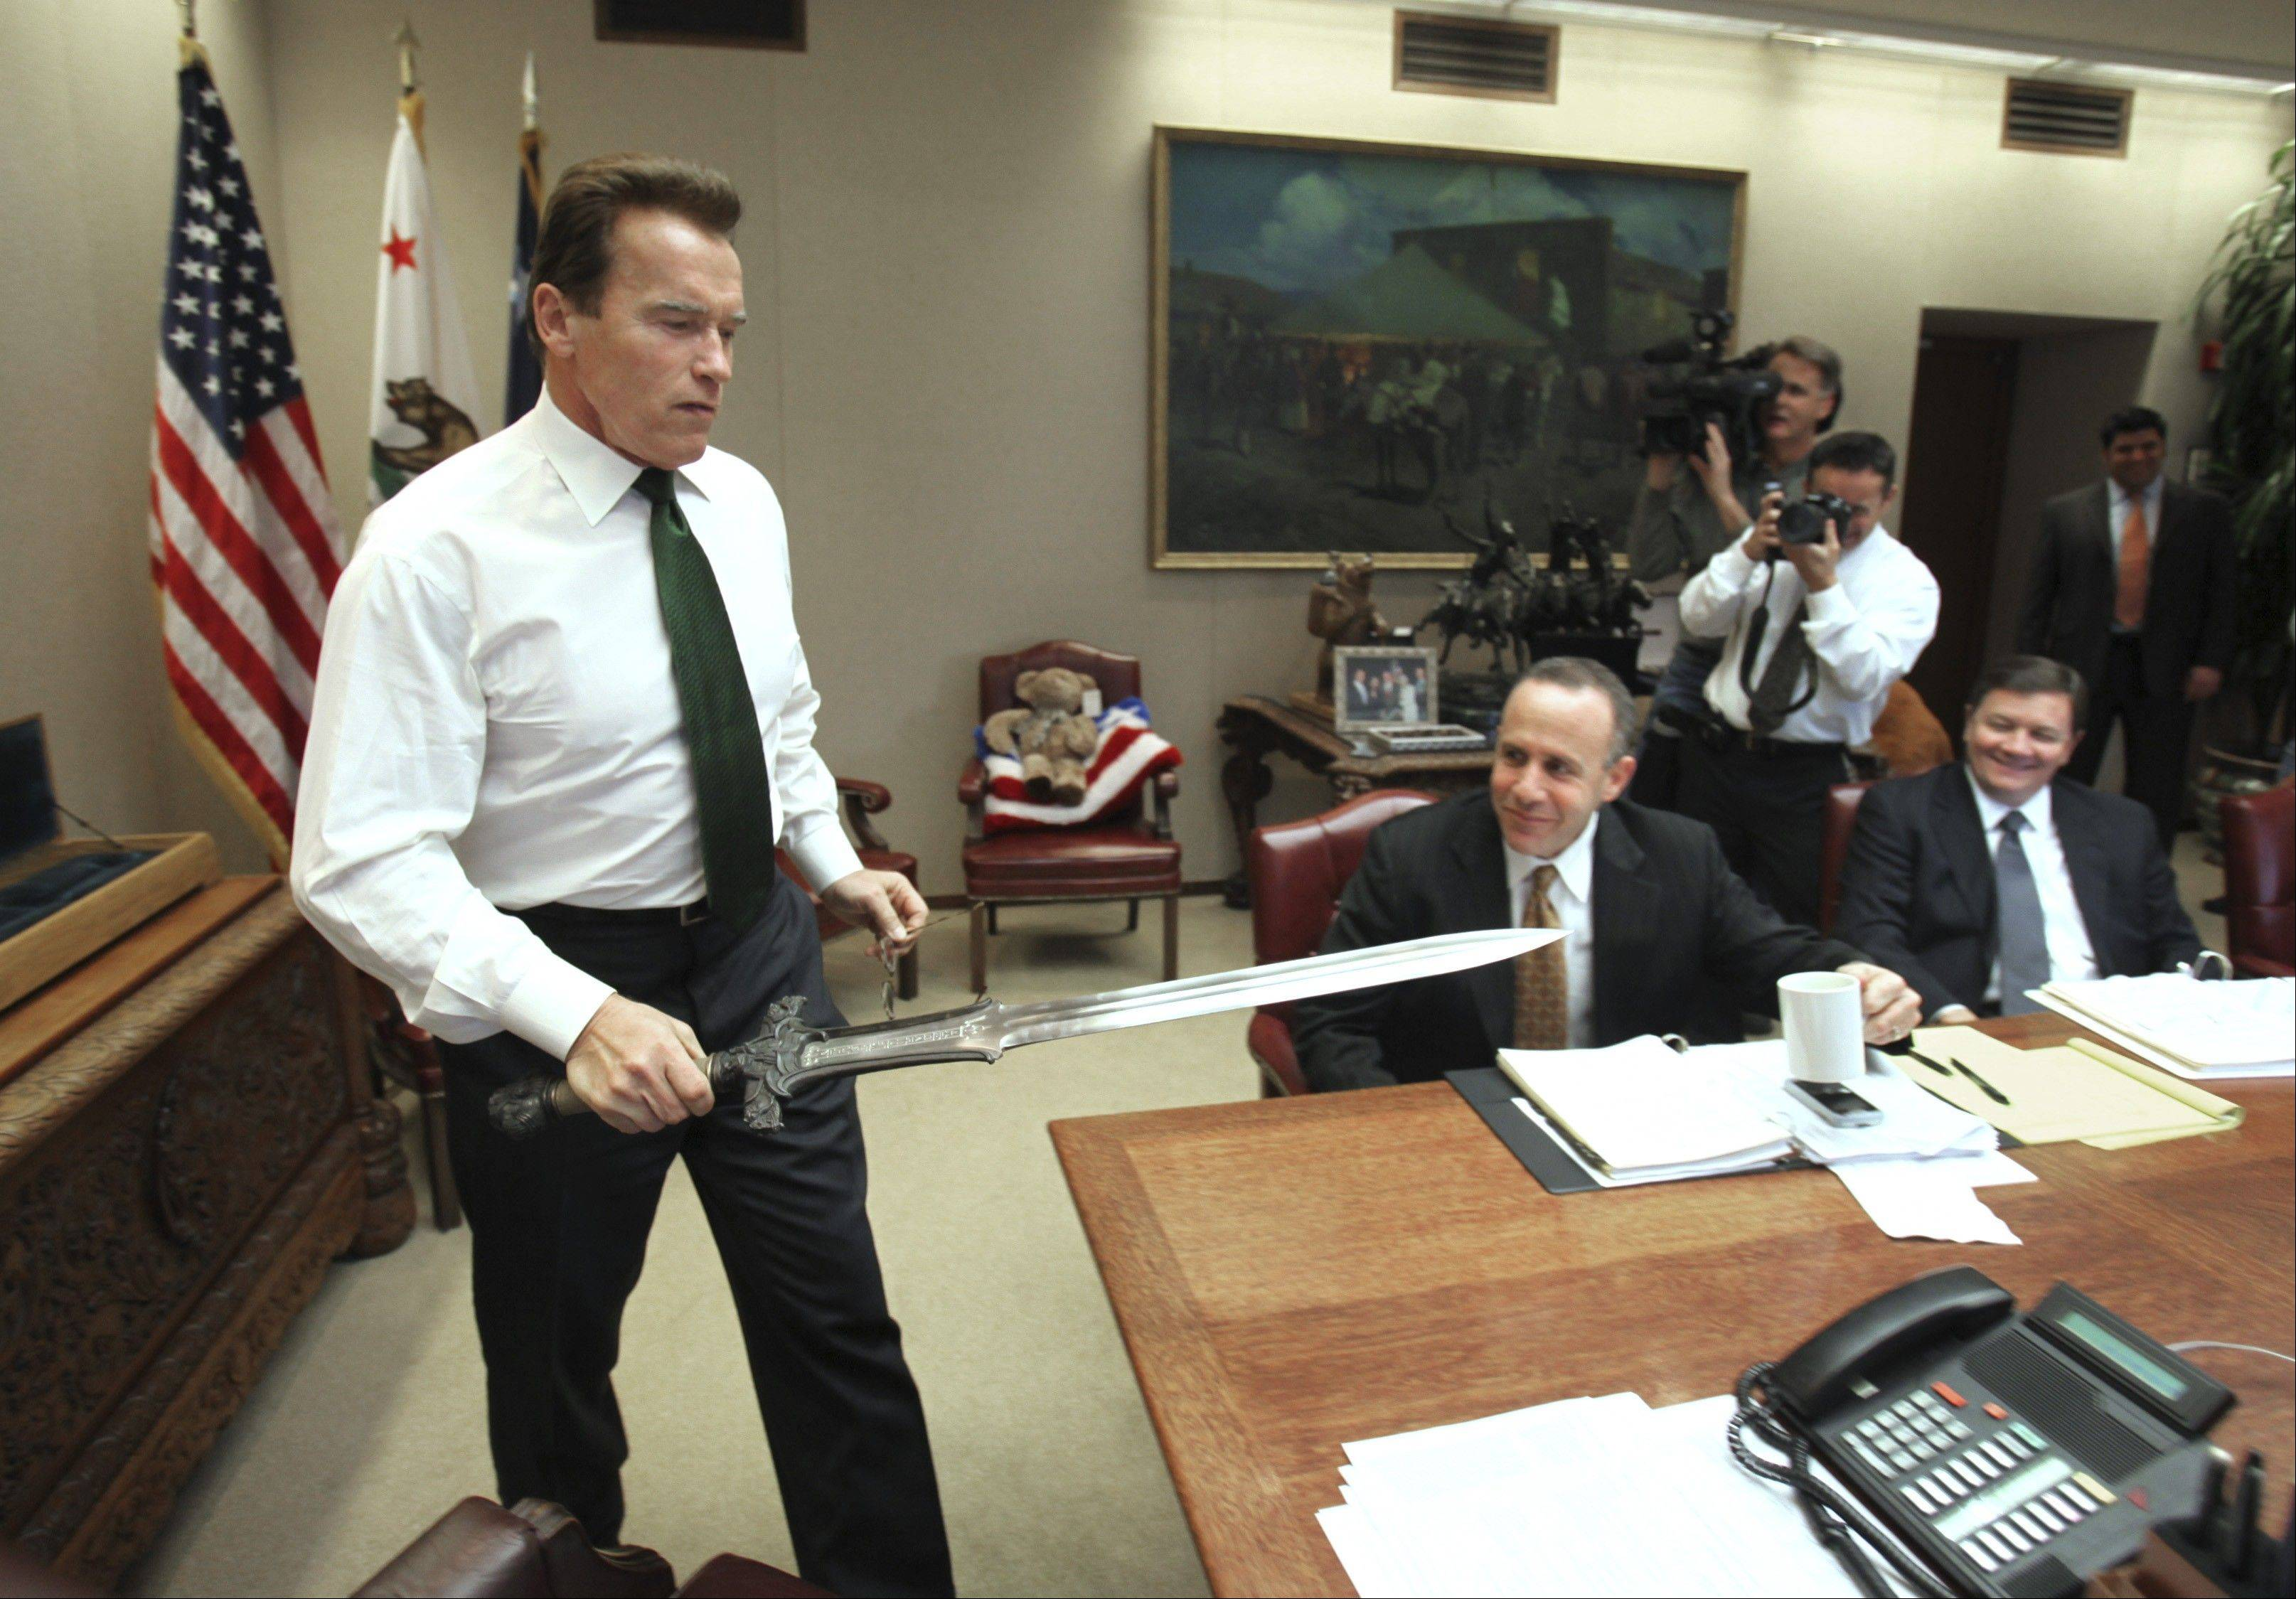 Associated Press/Jan. 13, 2009 Gov. Arnold Schwarzenegger brings the sword he used in the movie �Conan The Barbarian,� to the conference table before the start of budget negotiations with legislative leaders at the Capitol in Sacramento, Calif.